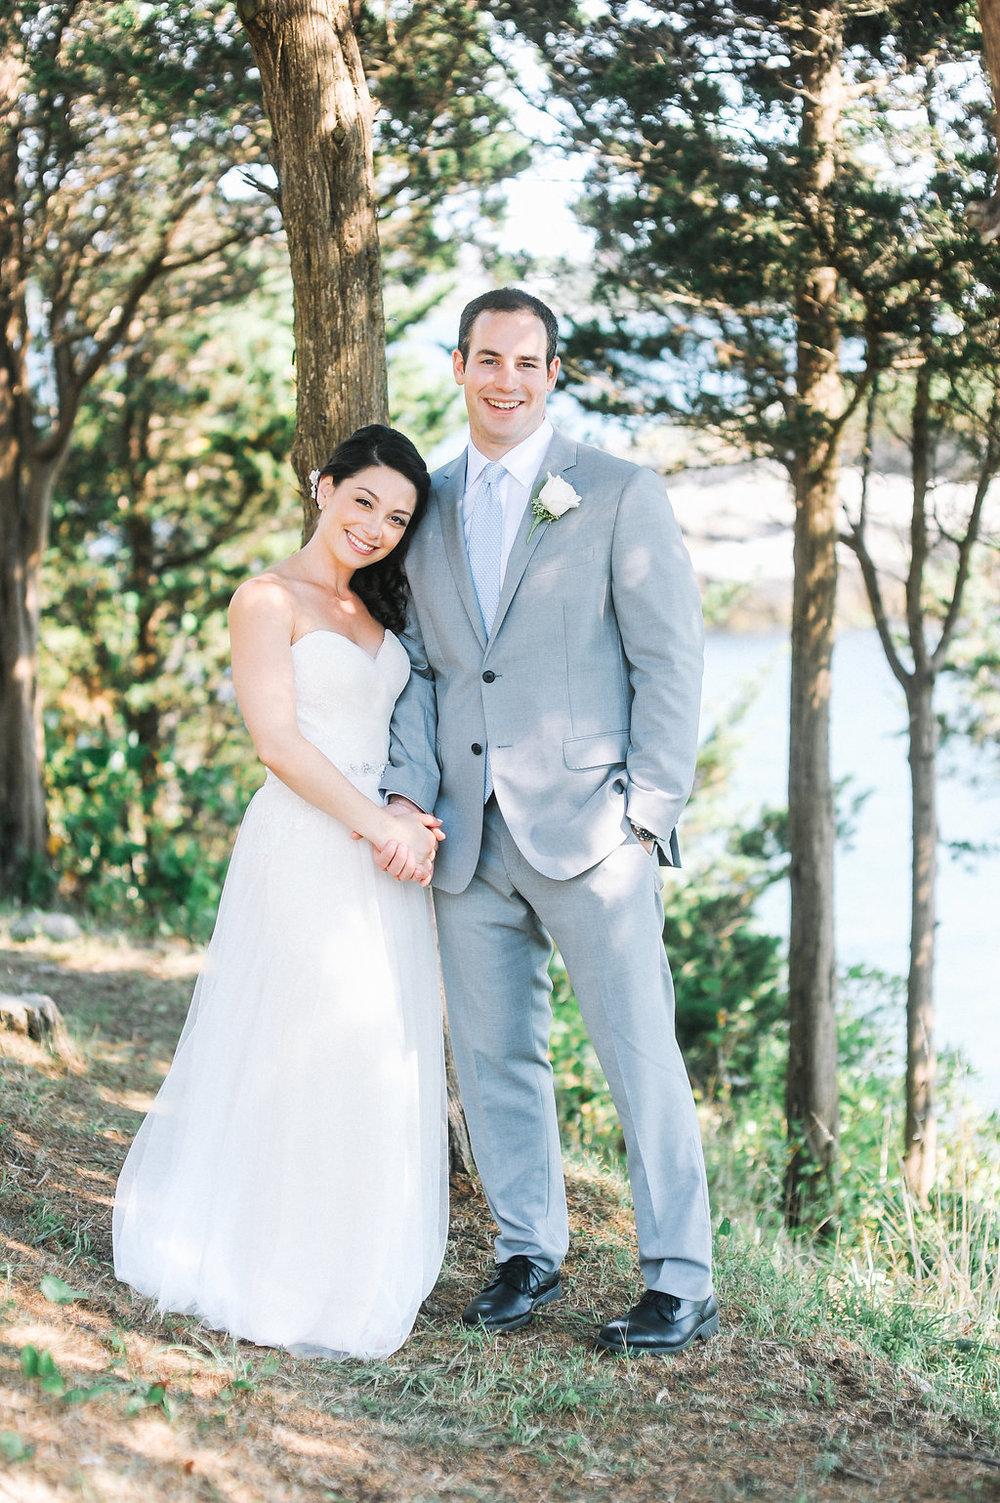 BrideGroomPortraits_Dragonline_Studios_Jamestown_RI_Wedding-19.jpg